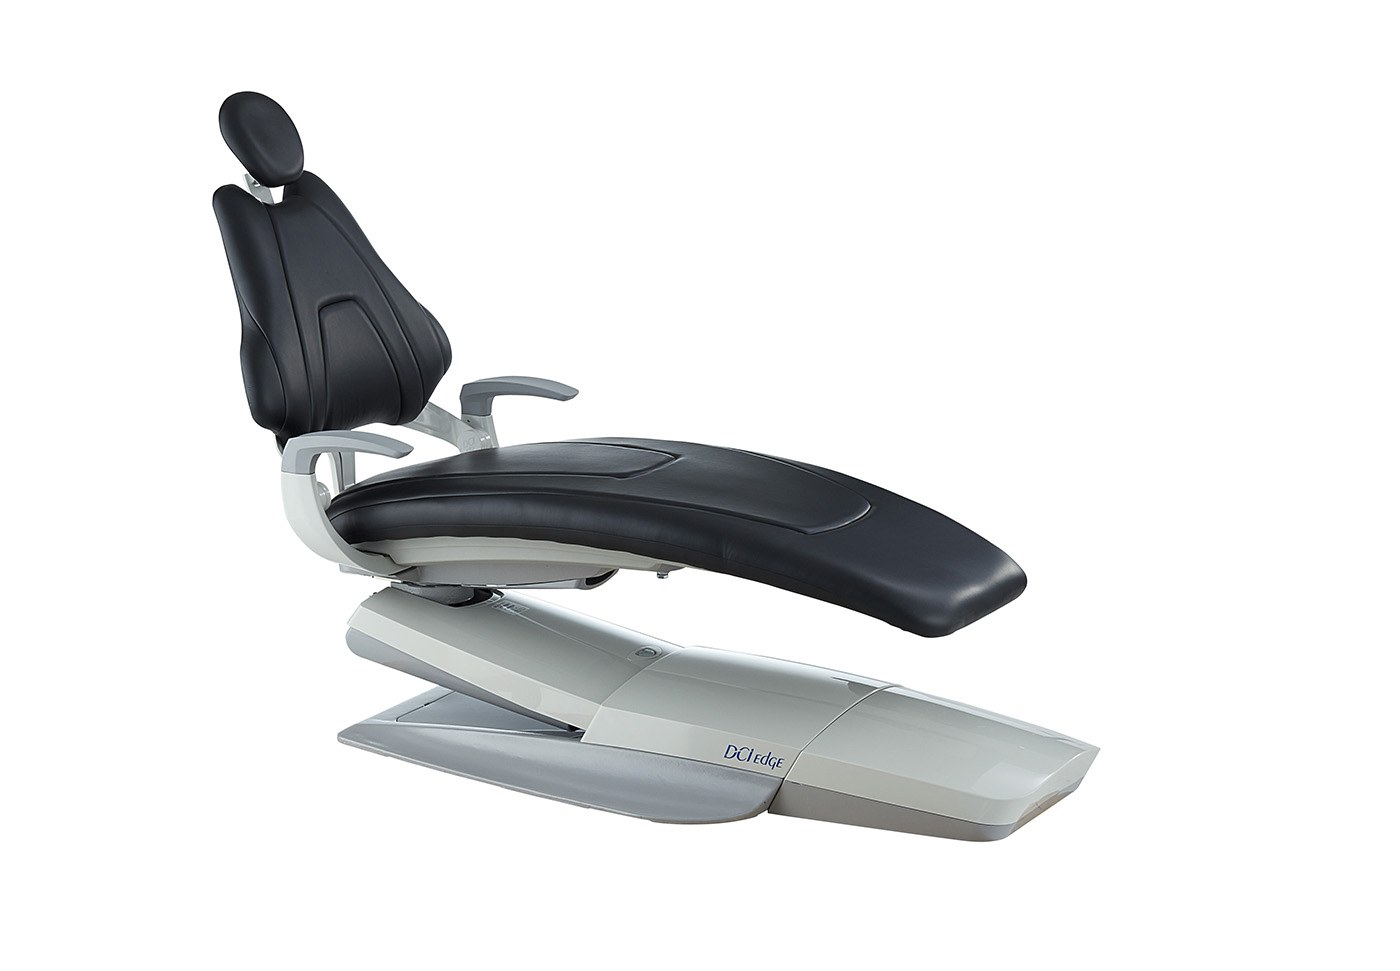 portable dental chair philippines luxor spa the best in world mr right